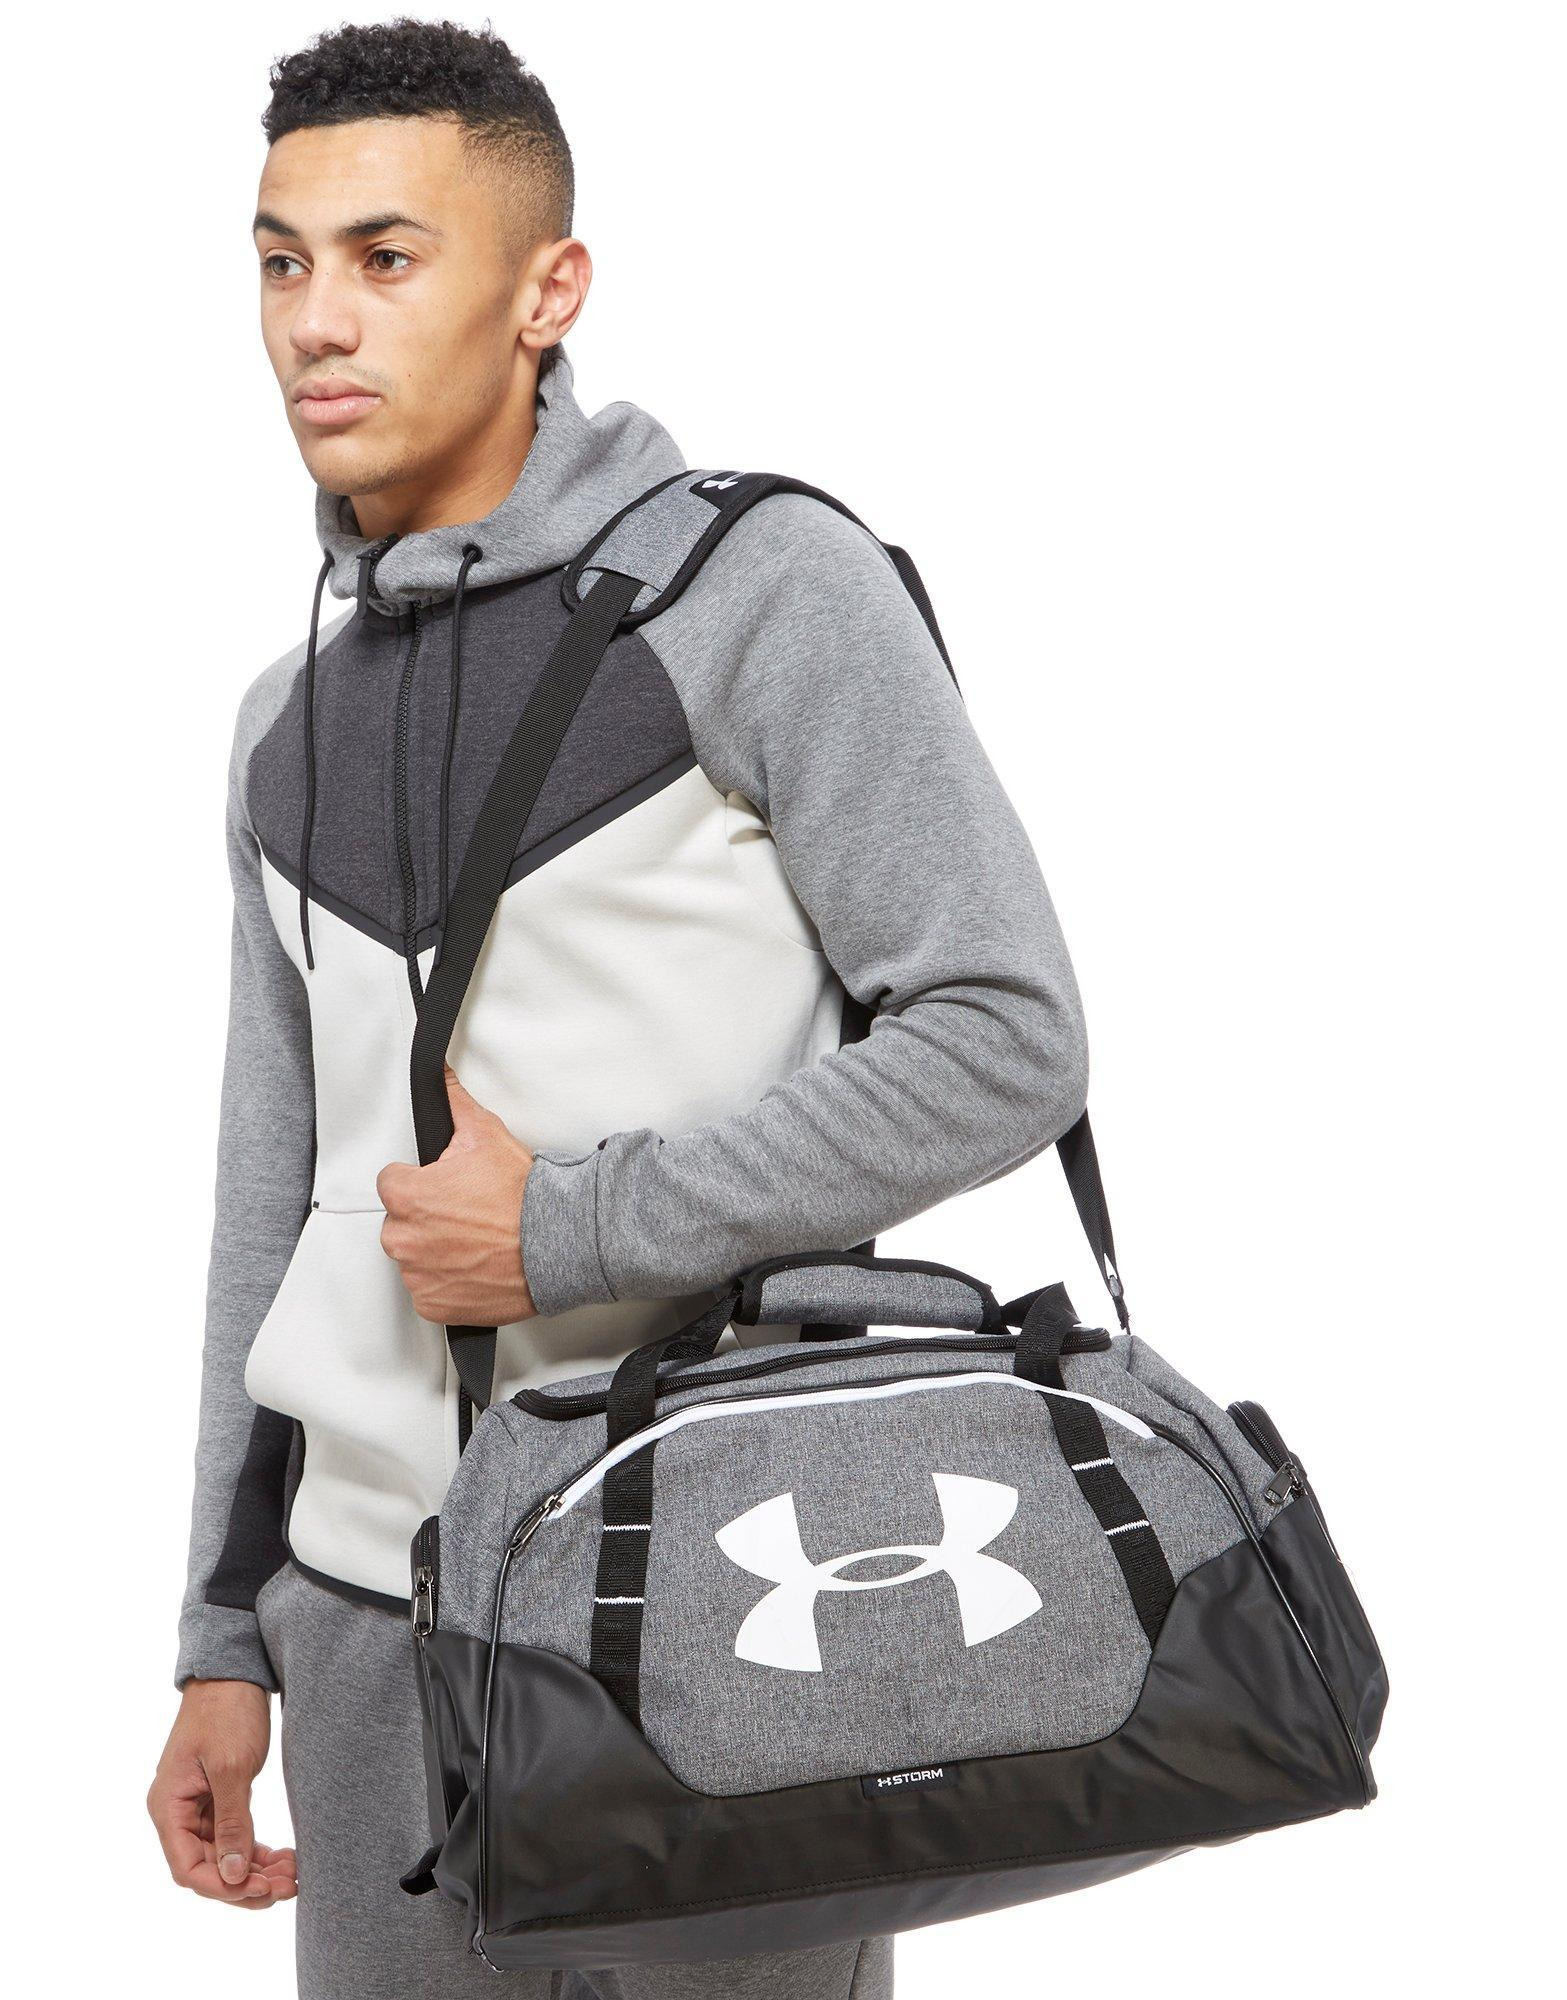 005f4f1f6556f Under Armour Undeniable Duffle 30 Xs Men's Sports Bag In Grey in ...